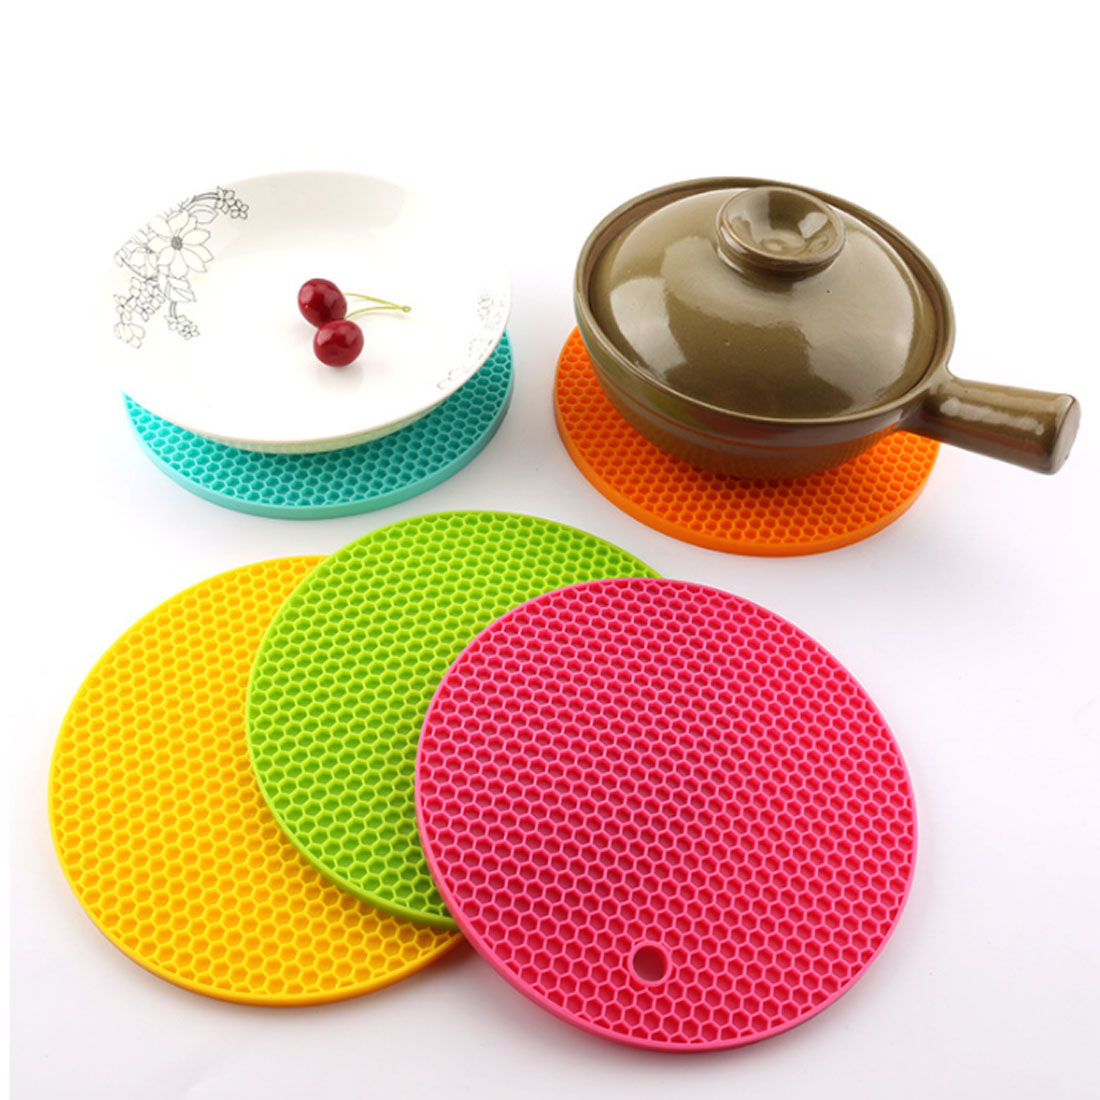 Hot Sale 18Cm Round Silicone Non-Slip Heat Resistant Mat Coaster Cushion Placemat Pot Holder Kitchen Accessories